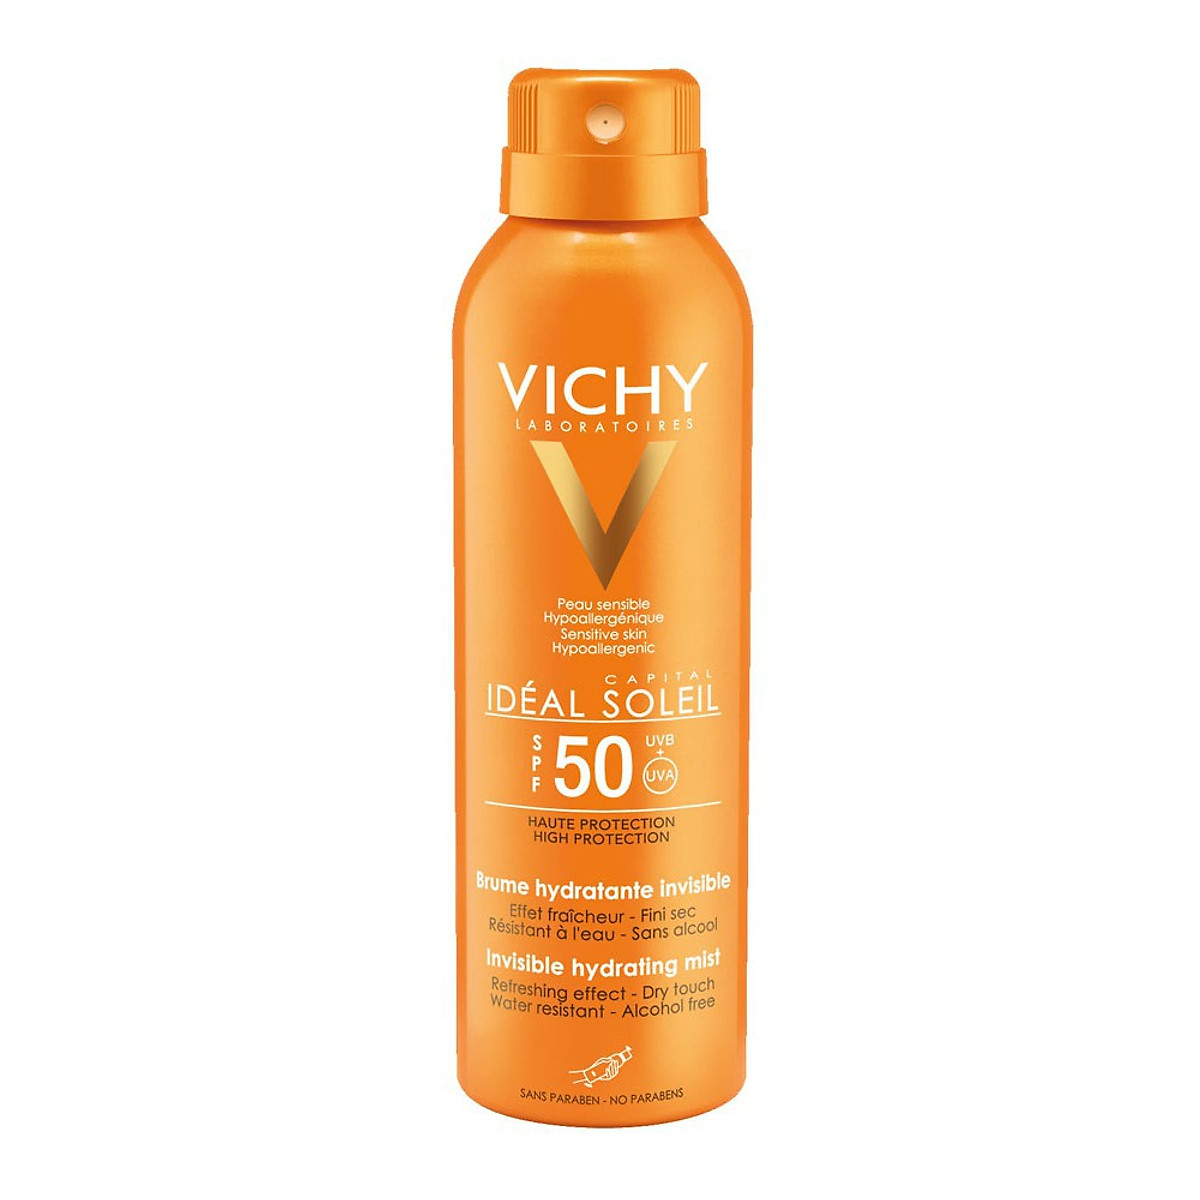 Vichy Ideal Soleil SPF 50 Invisible Hydrating Mist Dry Touch